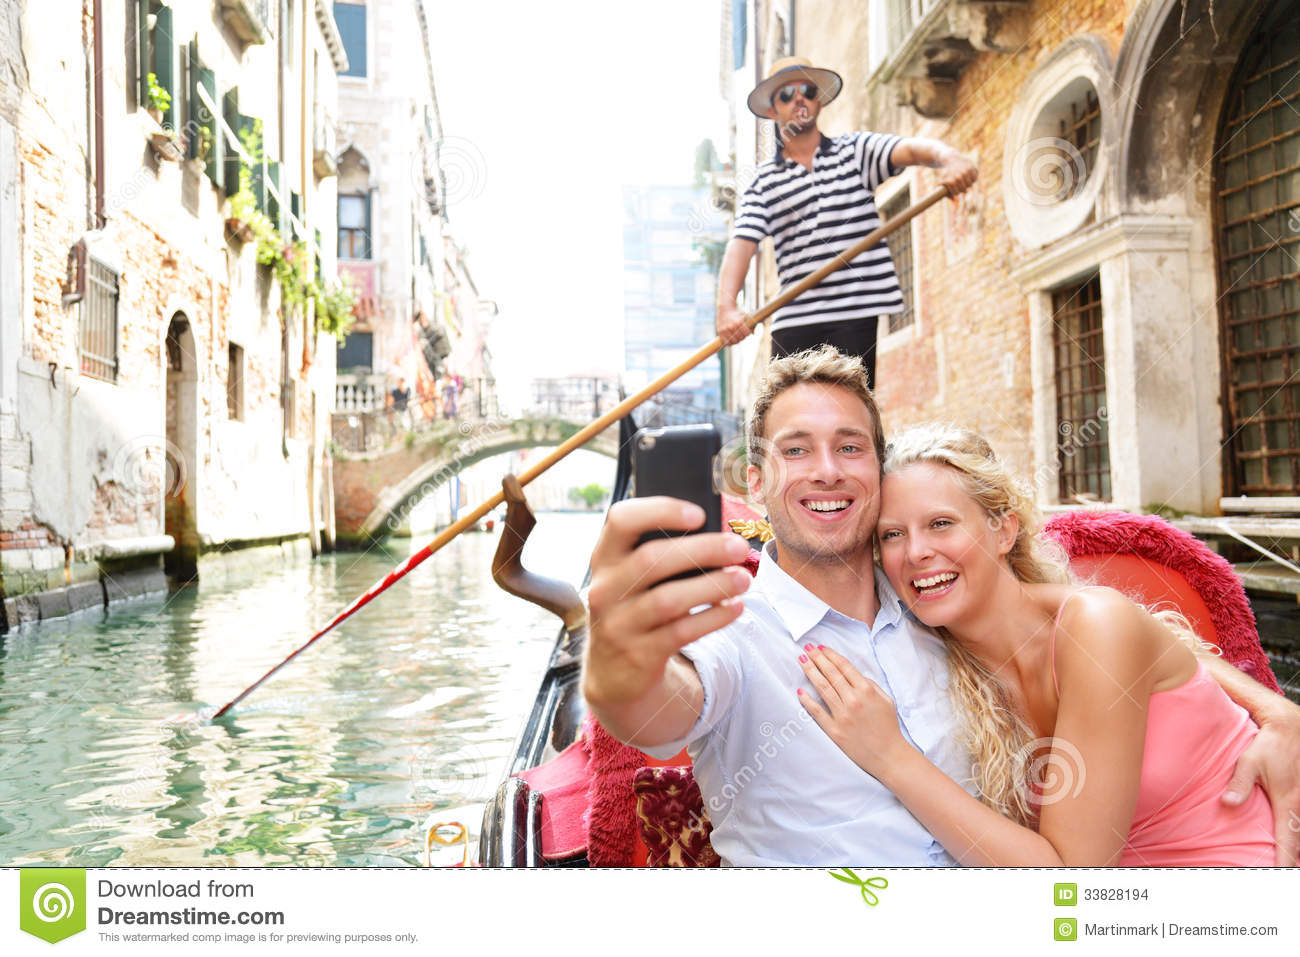 Couple in venice on gondole ride romance stock images for Where to go in michigan for a romantic weekend